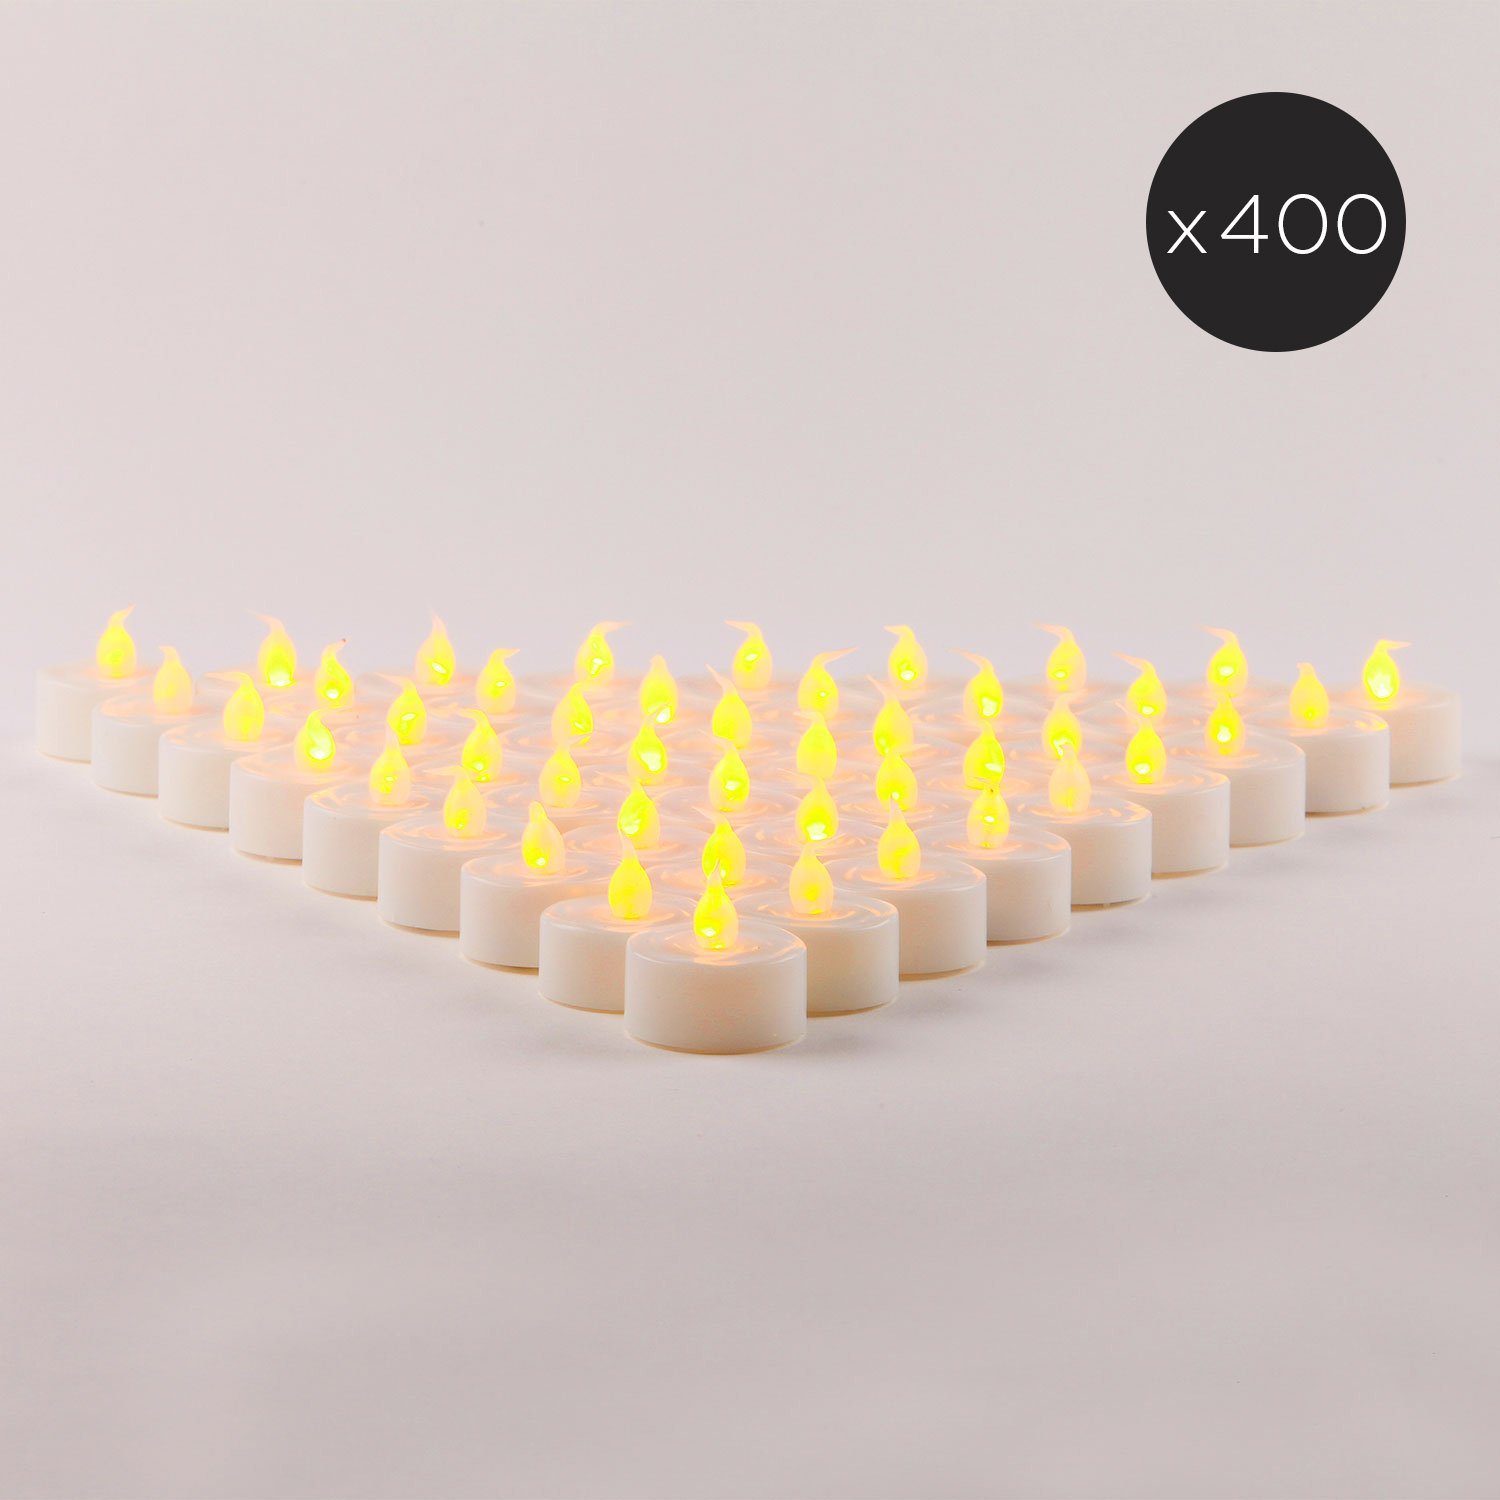 400 White Flameless Tea Lights | Bulk Value Set | Amber LEDs, Resin, Indoor & Outdoor Use, All Batteries Included